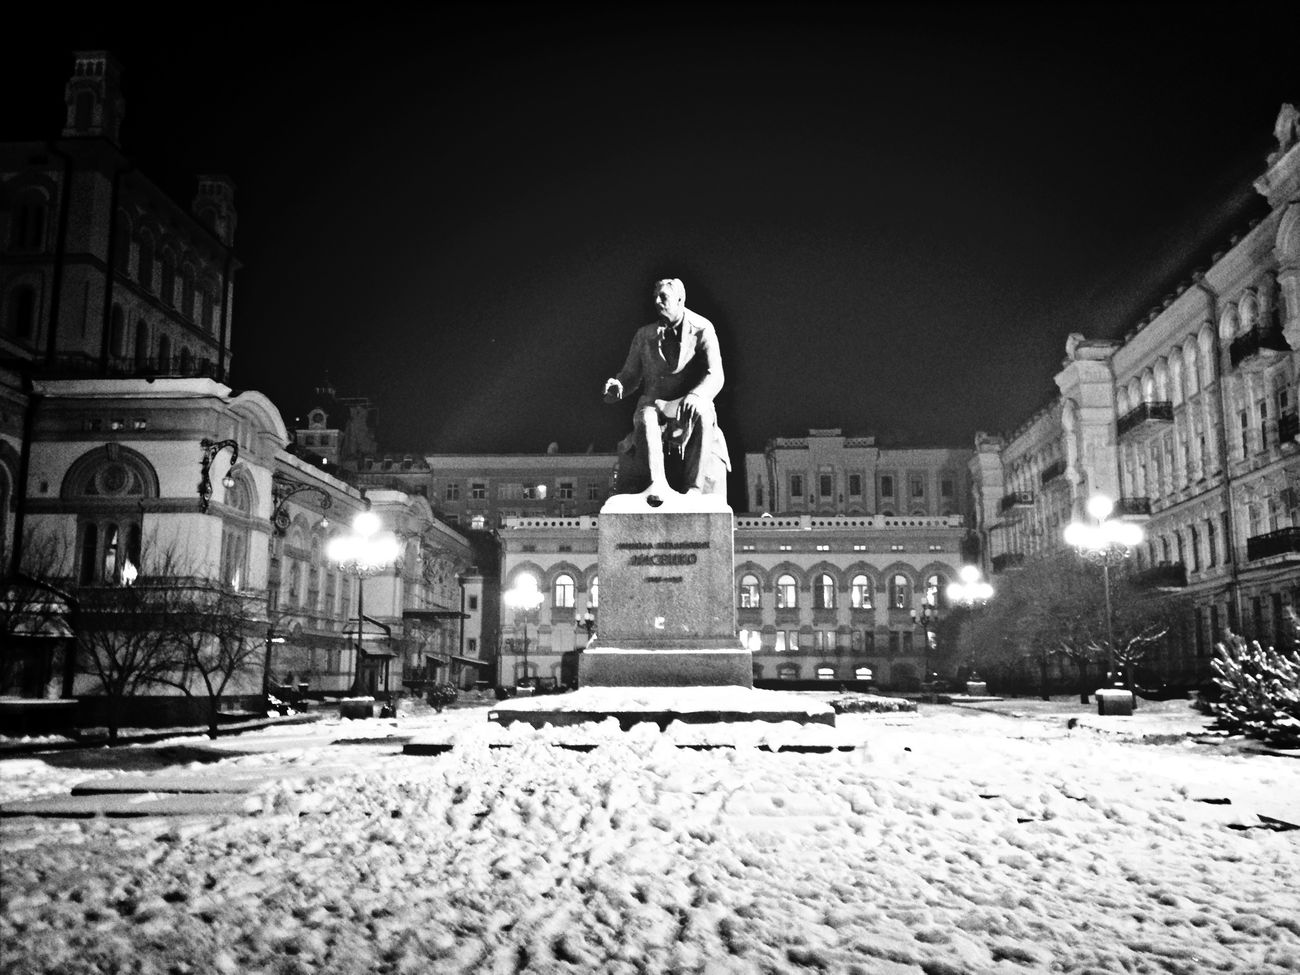 Lysenko Statue Winter White By CanvasPop Architecture